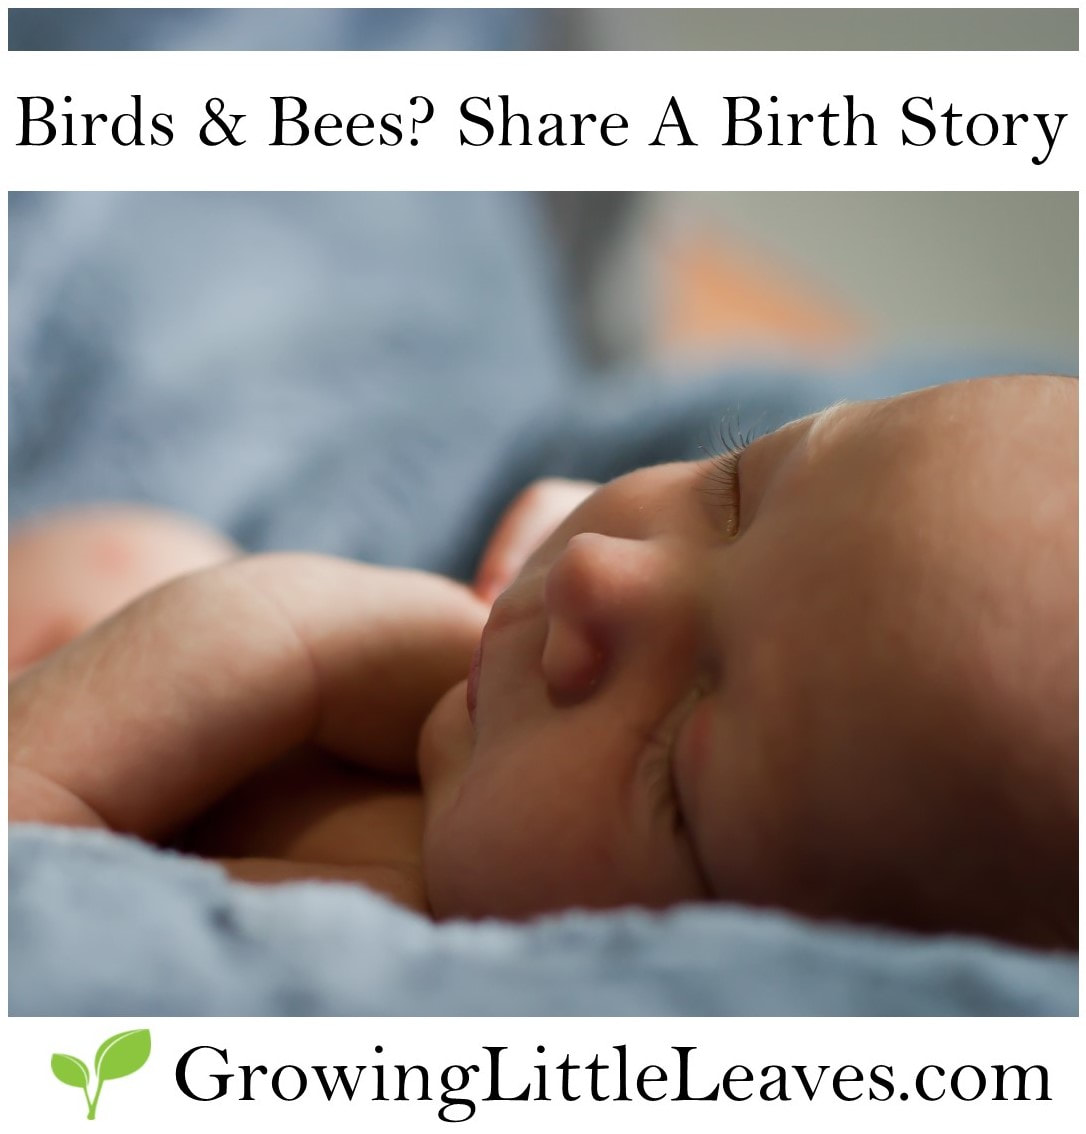 Birds & Bees? Share A Birth Story // GrowingLittleLeaves.com